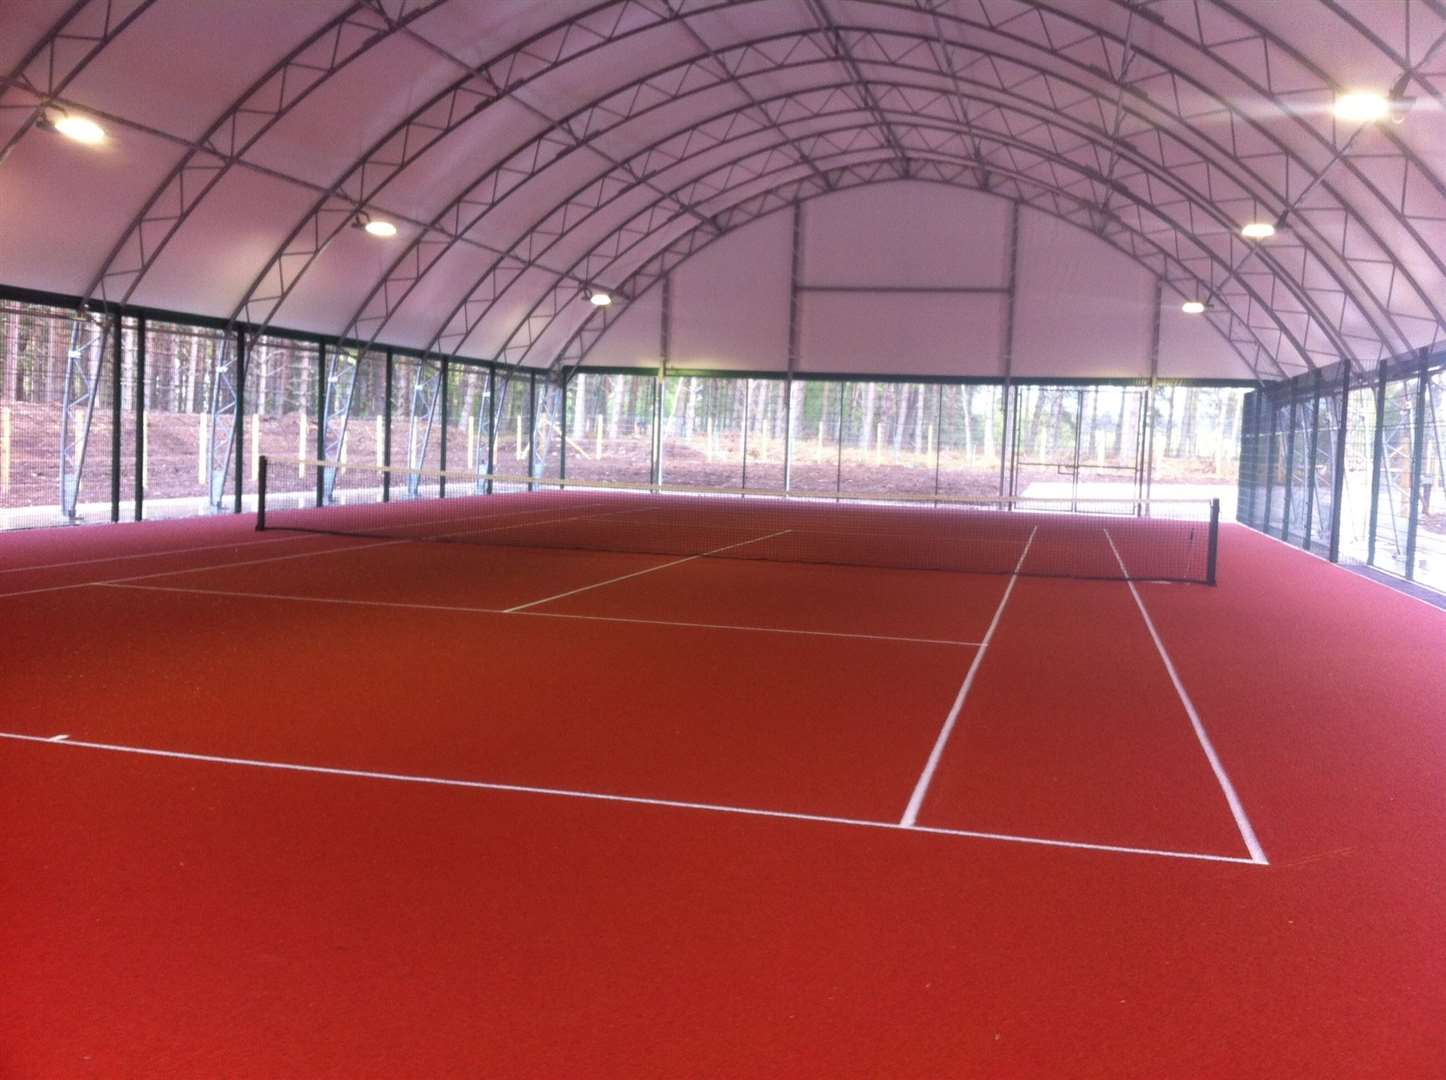 The new indoor court which has a polymeric playing surface designed to be kinder to joints.